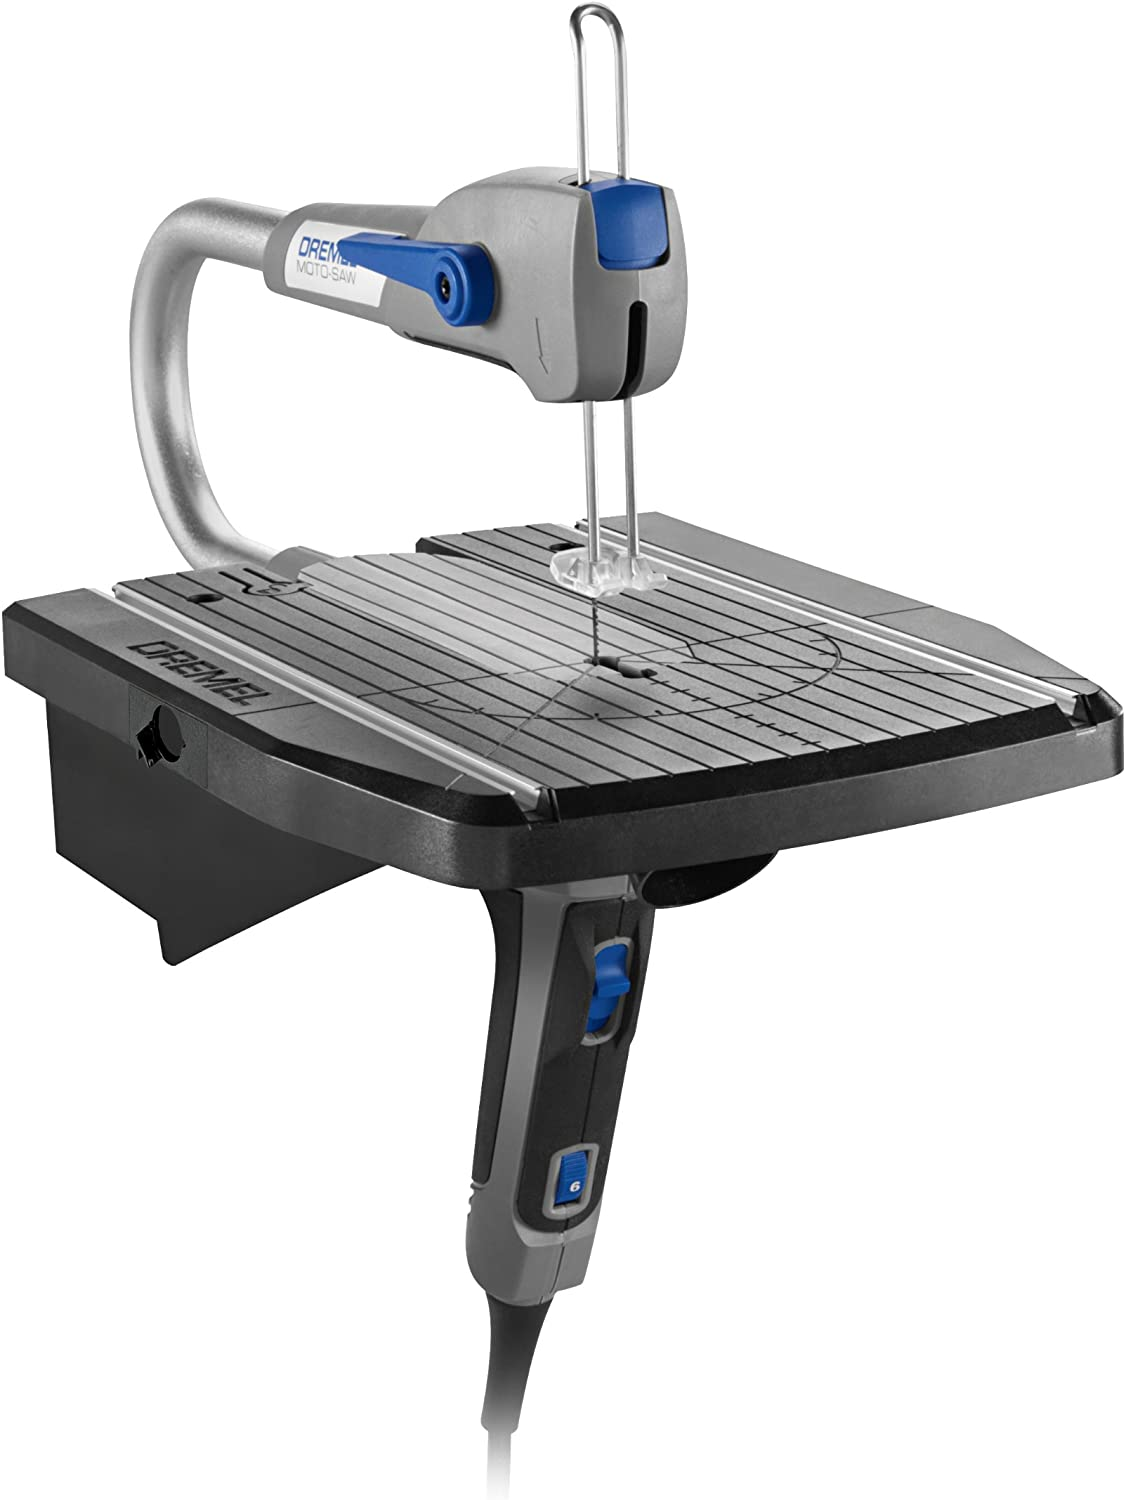 Dremel MS20-01 Scroll Saw – Most Automated Scroll Saw